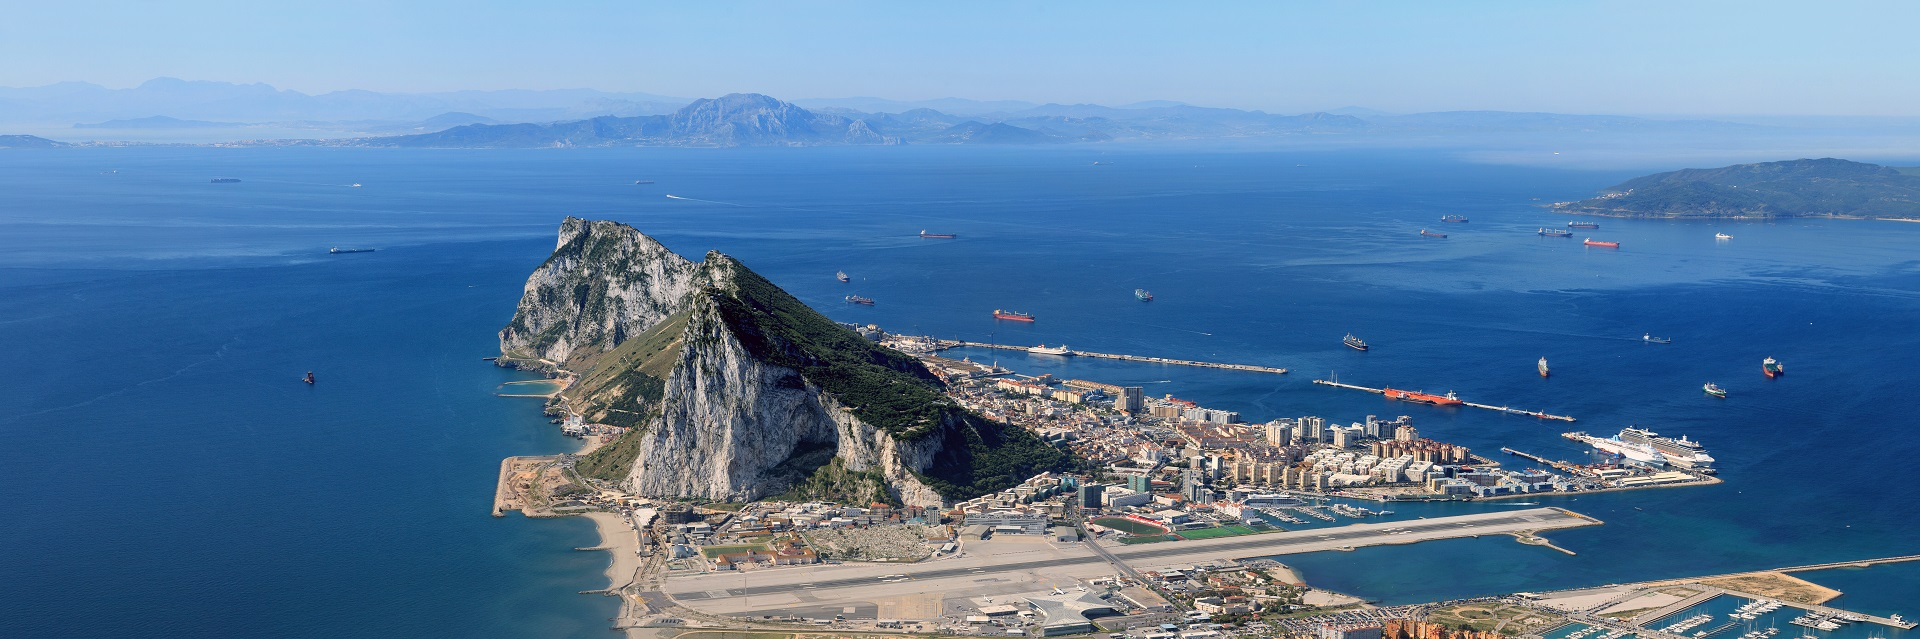 Helicopter flights and tours from Gibraltar - Charter and cargo